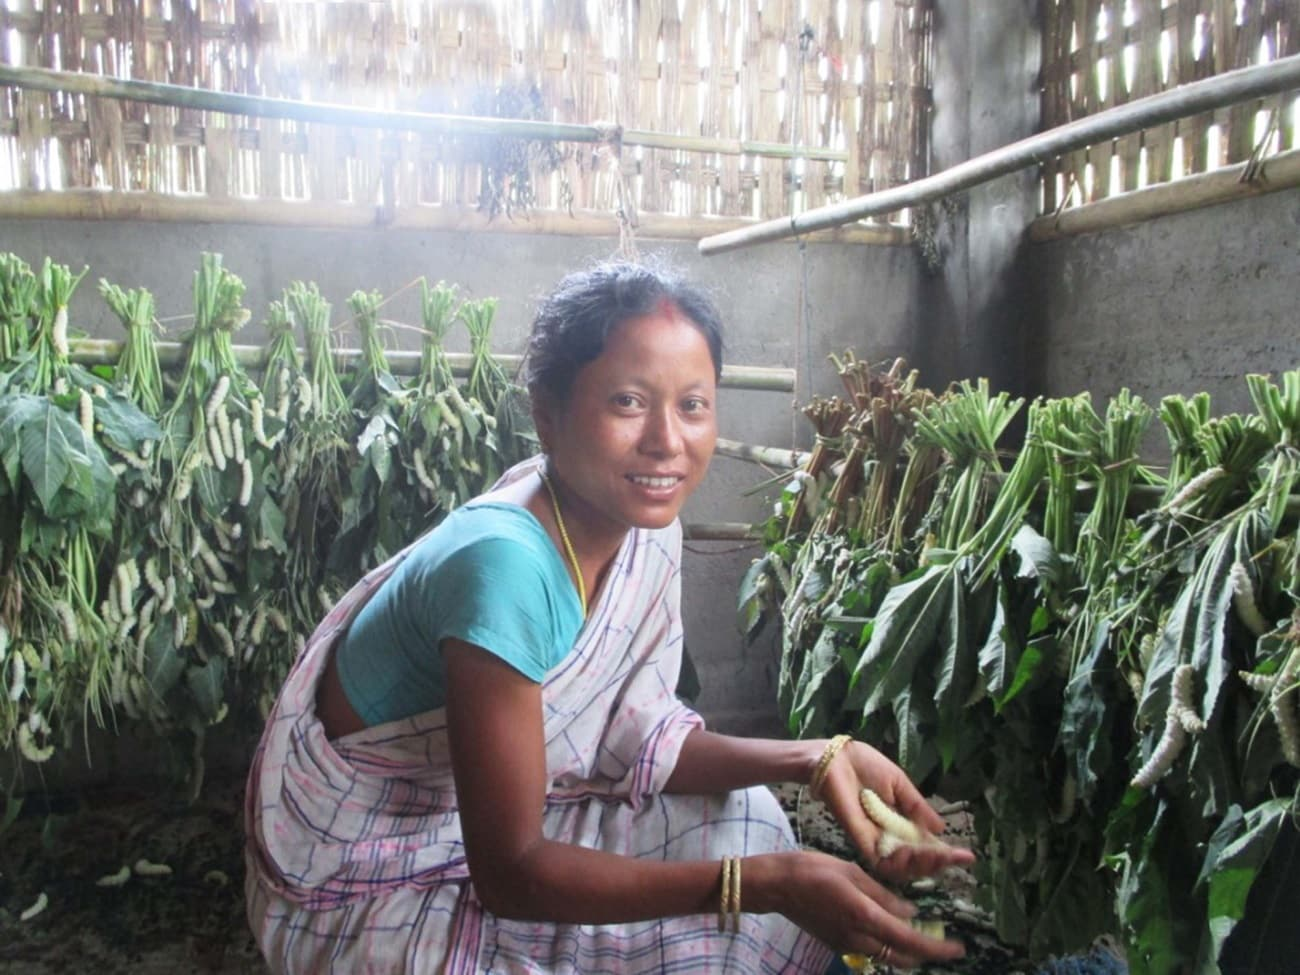 A woman rears silkworms at home in Assam. (HANDOUT/North-East Affected Area Development Society)